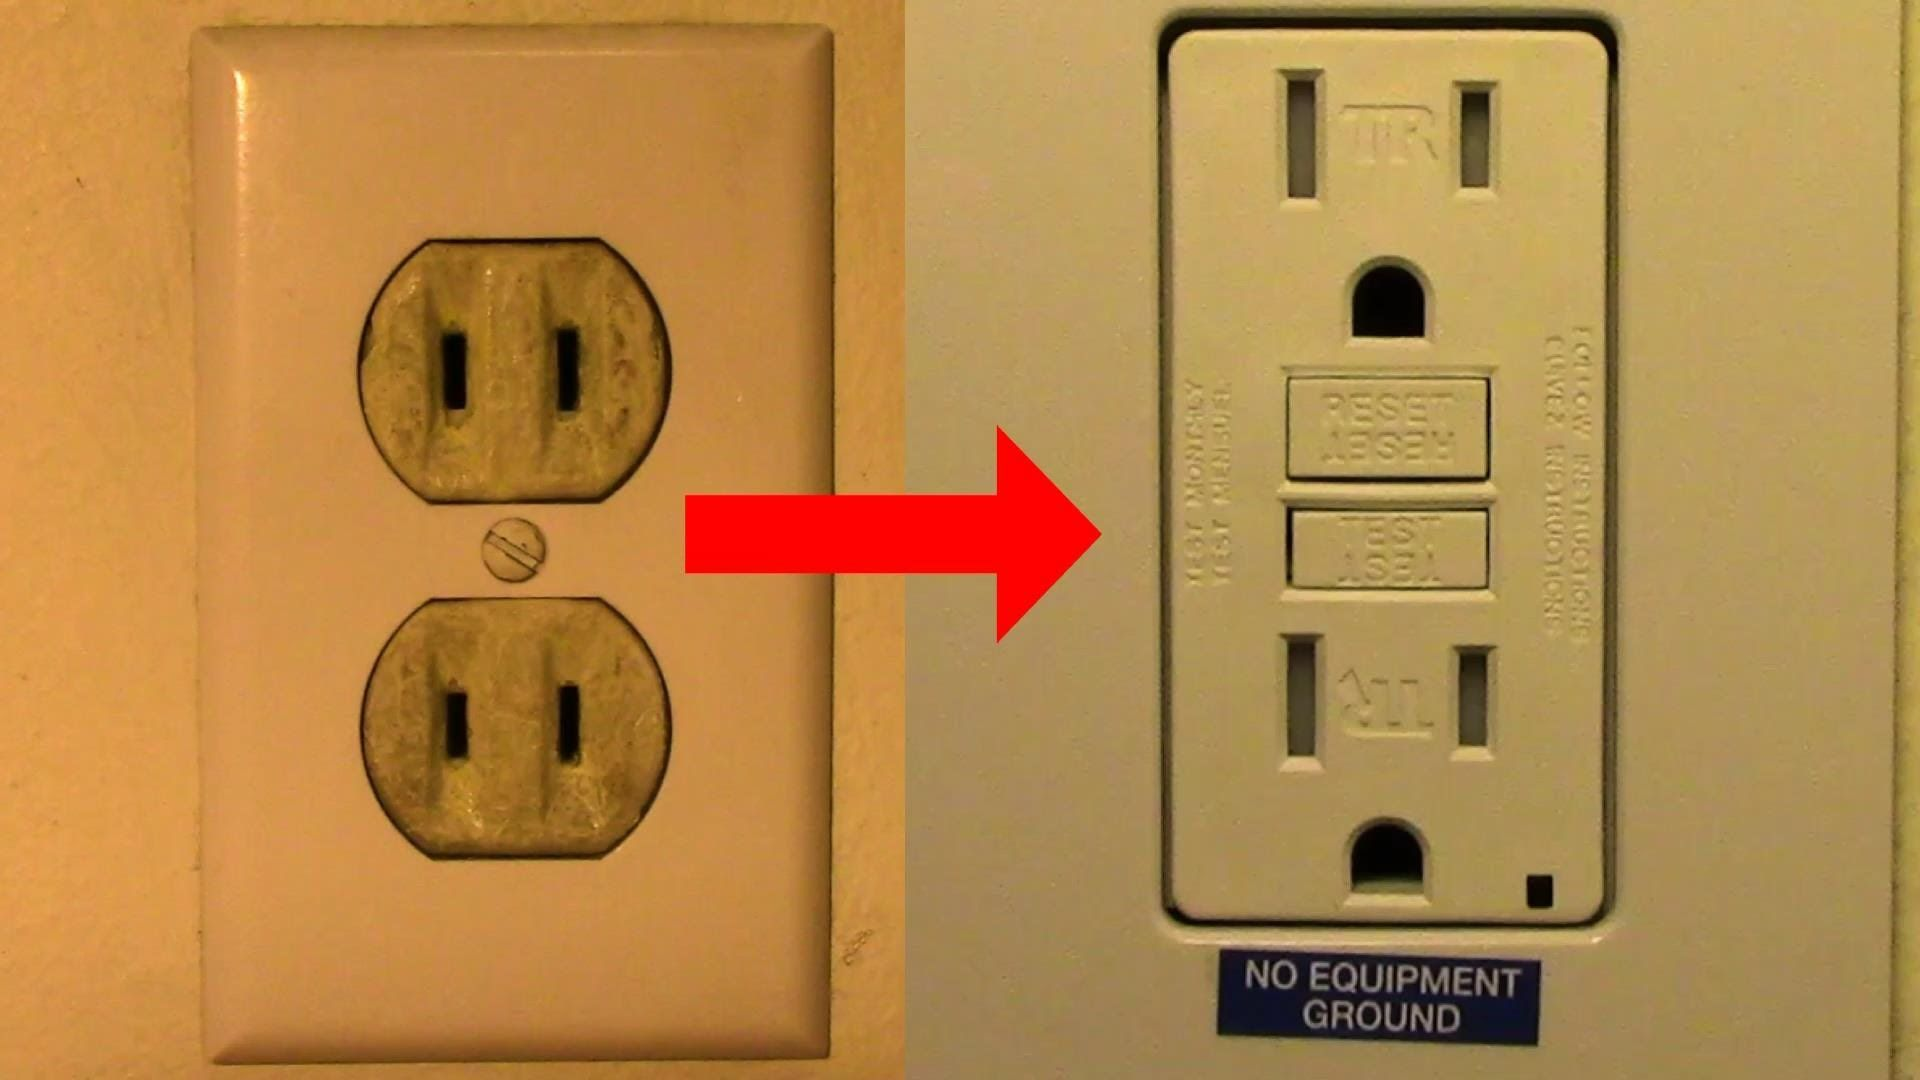 Replace Your Old Two Prong Receptacle With A Gfci Receptacle Per 2014 Nec With Images Gfci Electrical Outlets Home Electrical Wiring